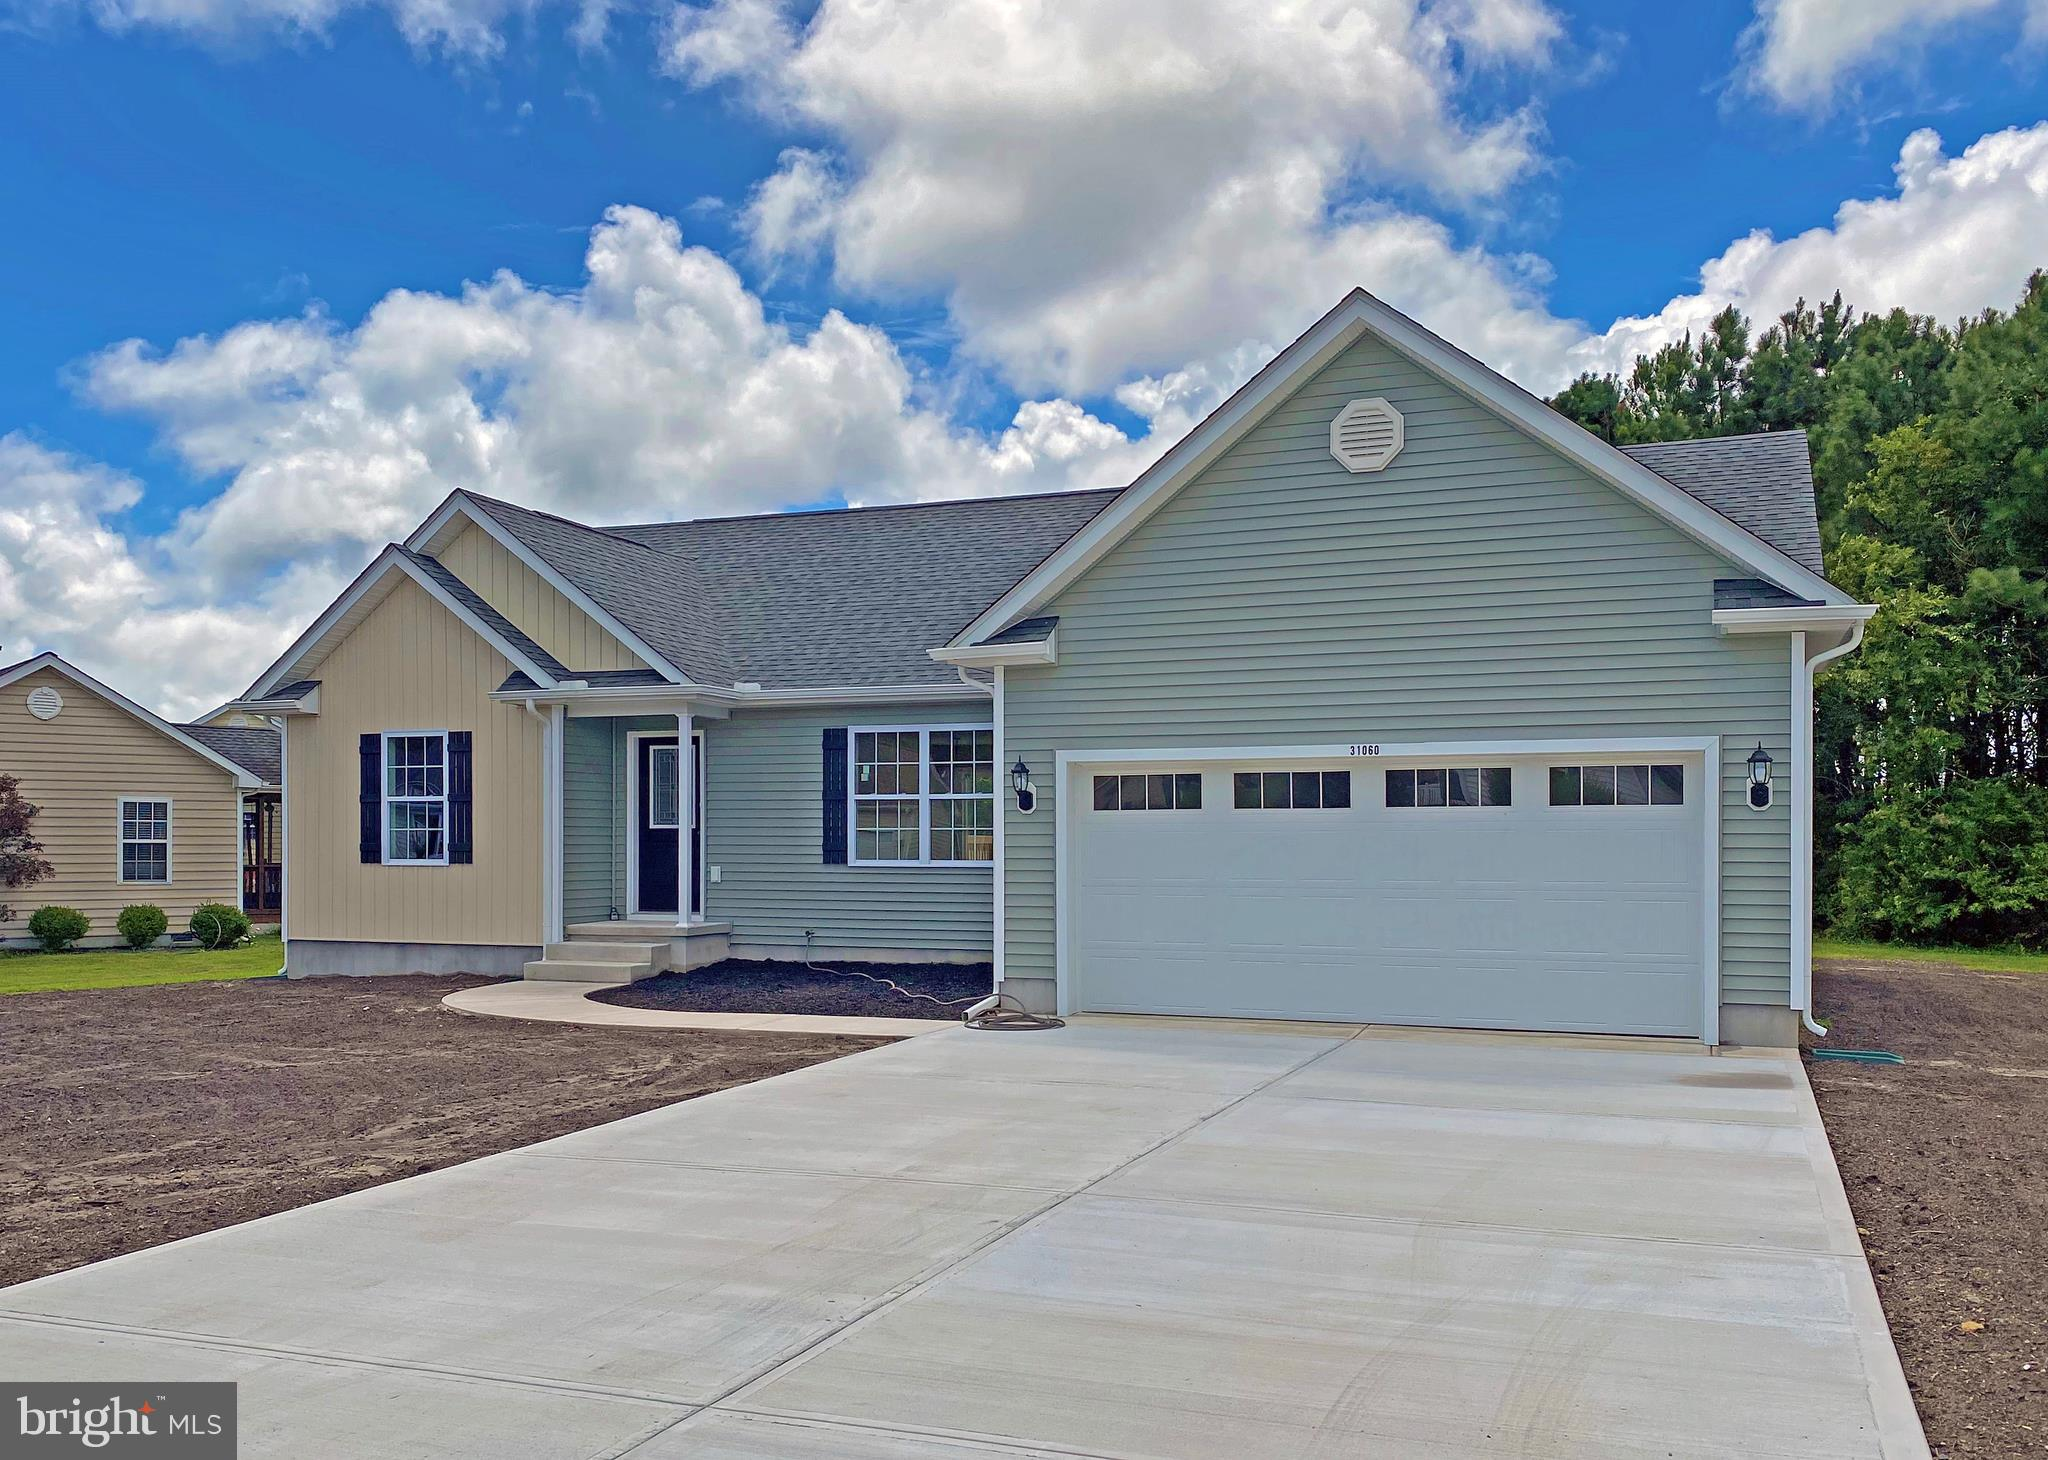 NEW CONSTRUCTION* - - Ready for your immediate occupancy! This popular open concept floor plan has t